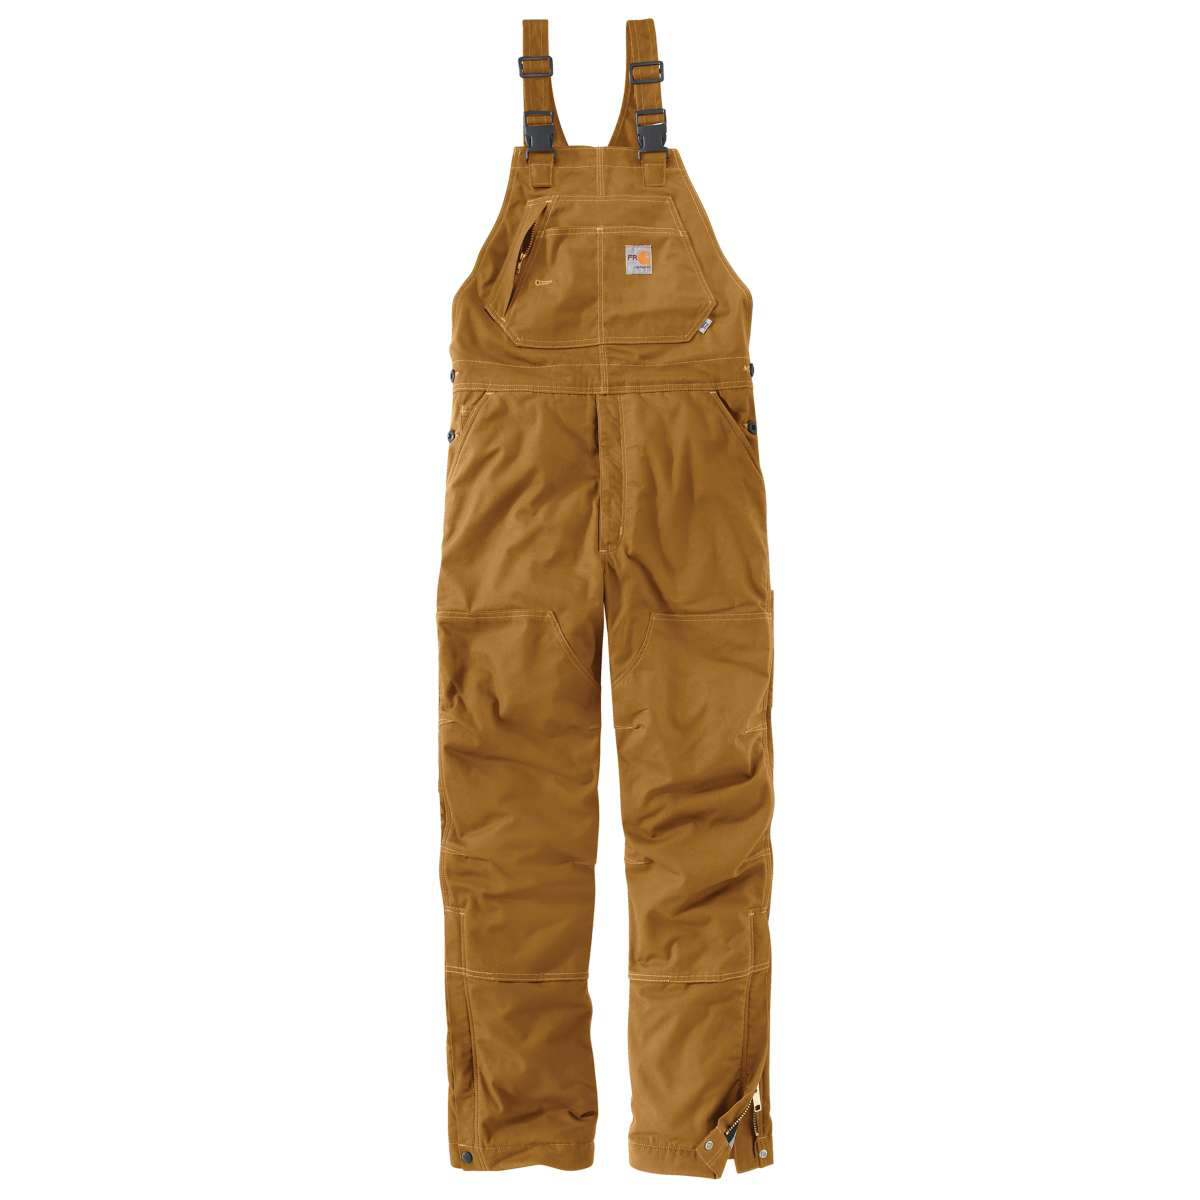 Carhartt Men's Flame-Resistant Quick Duck Lined Bib Overalls, Extended Sizes - Brown, 48/32